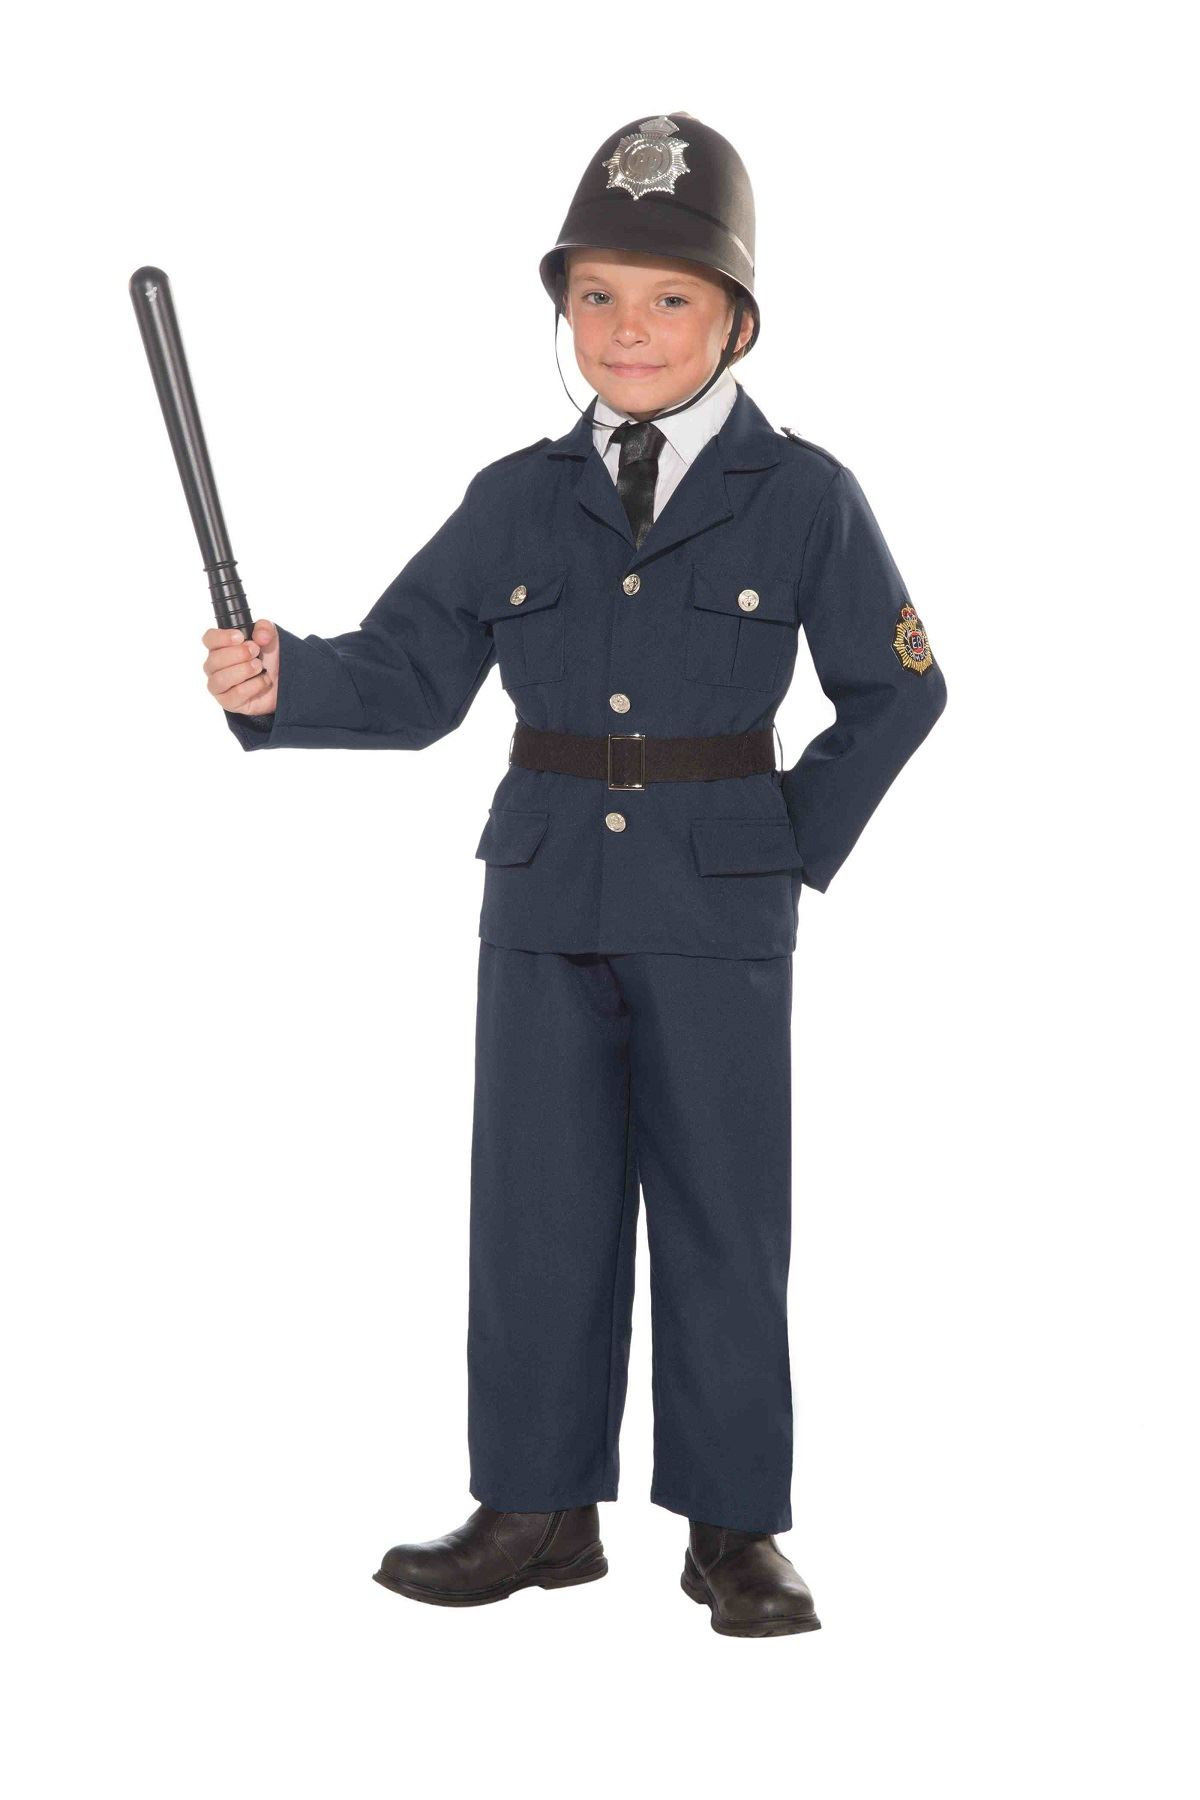 Kids Boys British Bobbie Police Costume  sc 1 st  The Costume Land & Kids Boys British Bobbie Police Costume | $36.99 | The Costume Land